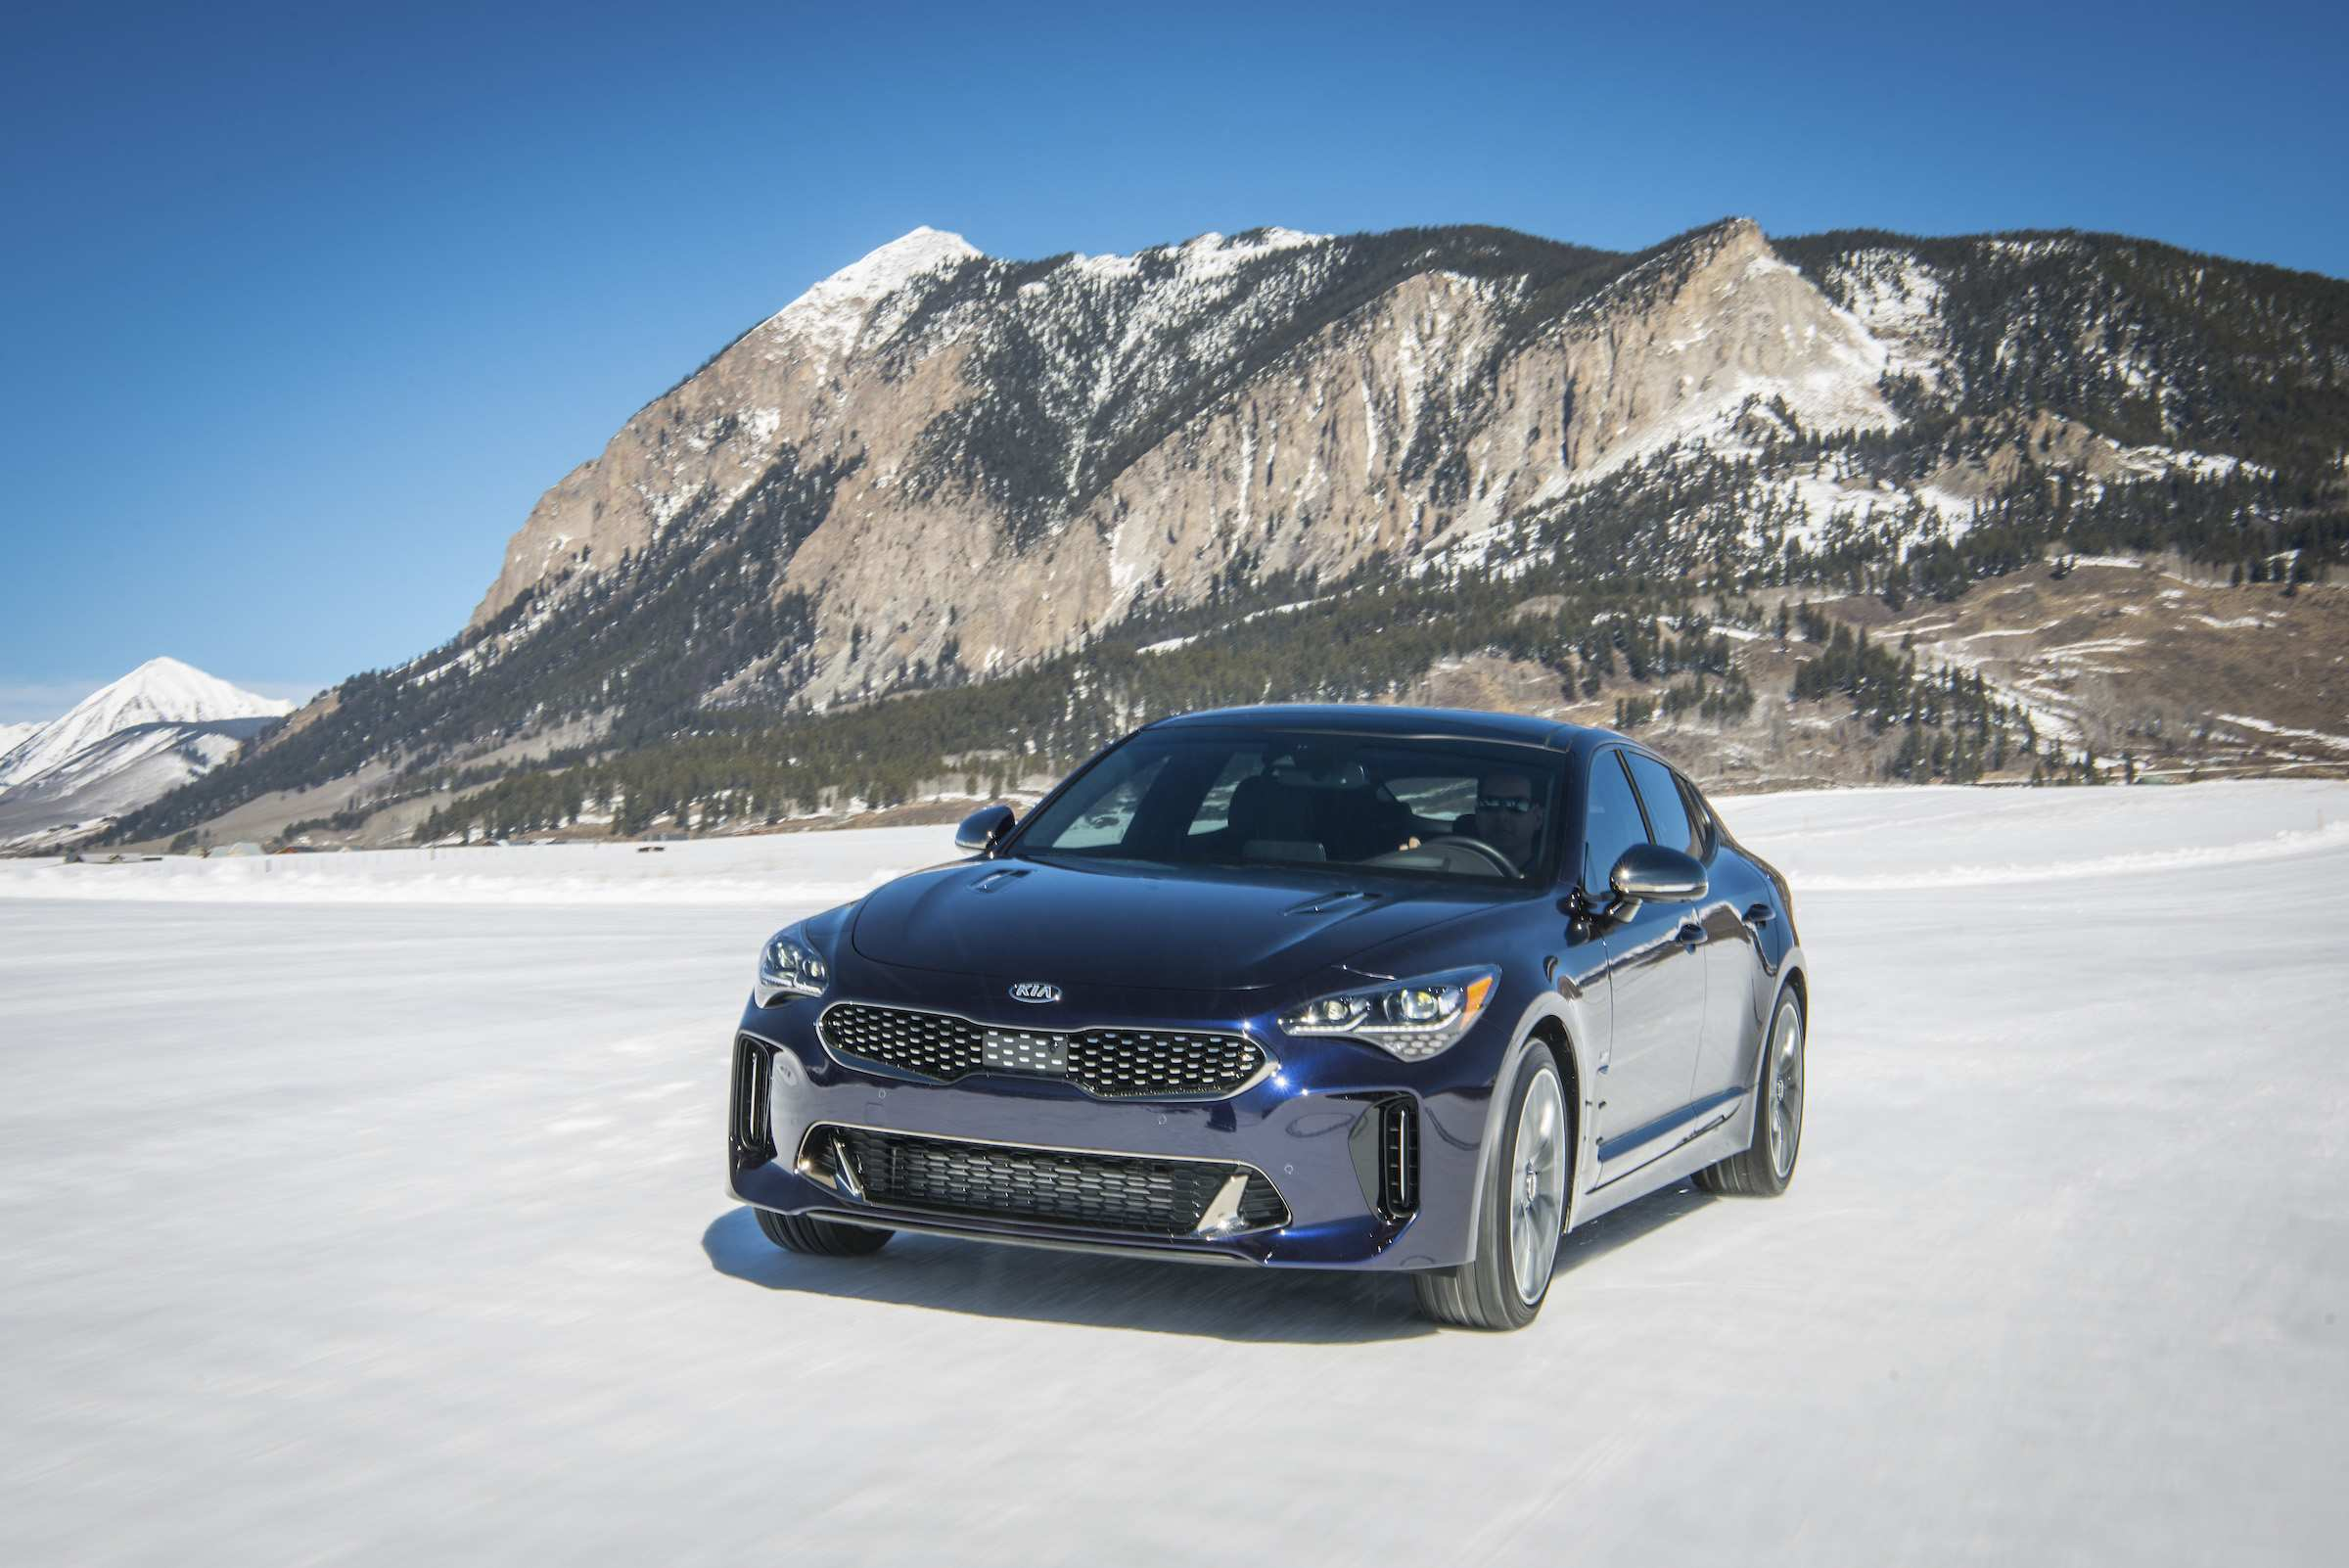 71 Great 2019 Kia Gt Atlantica Exterior Prices by 2019 Kia Gt Atlantica Exterior